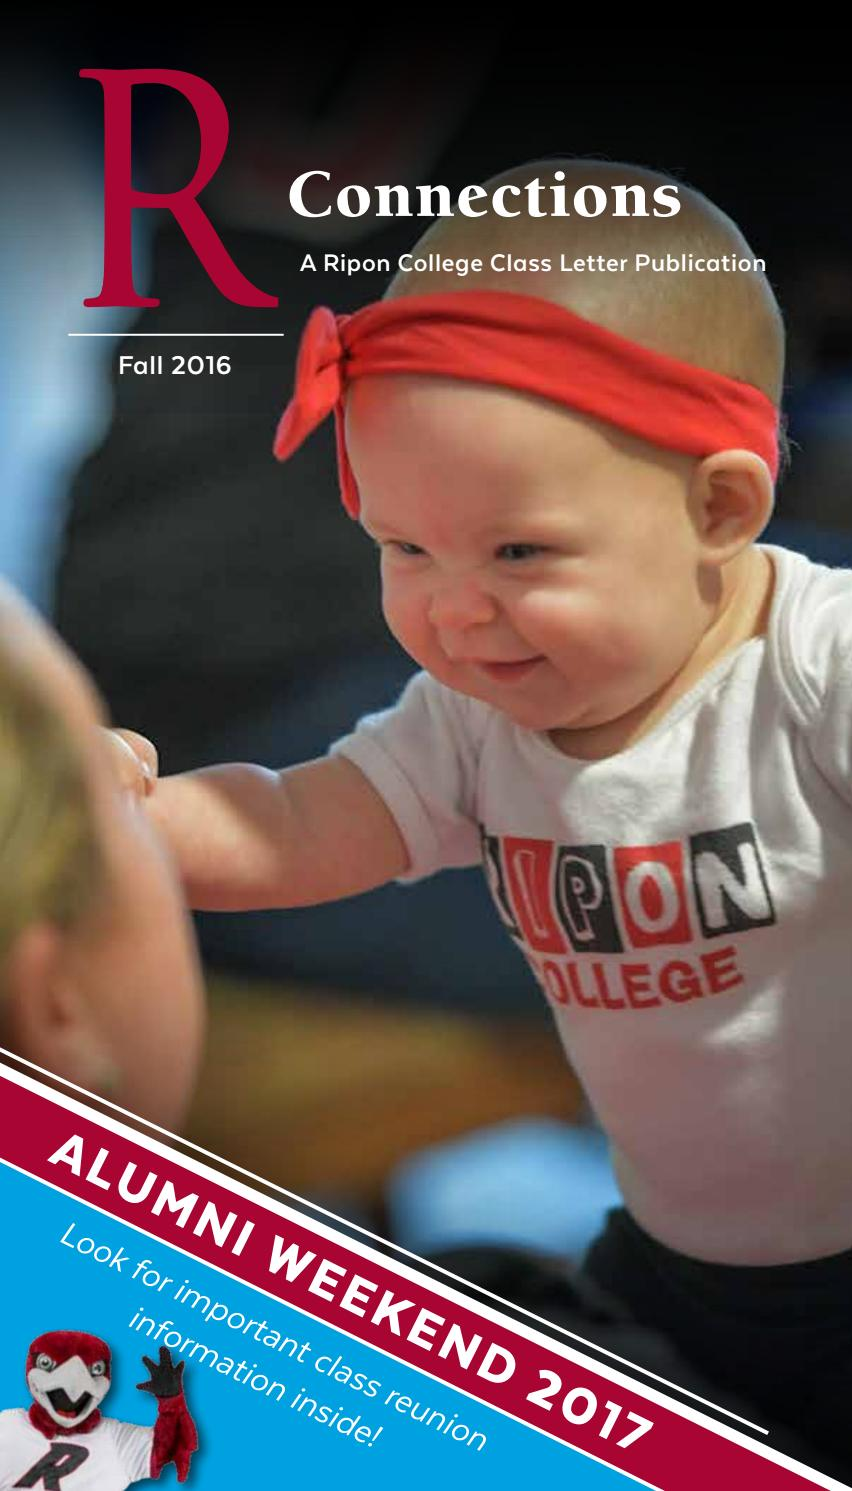 R Connections Fall 2016 by Ripon College - issuu